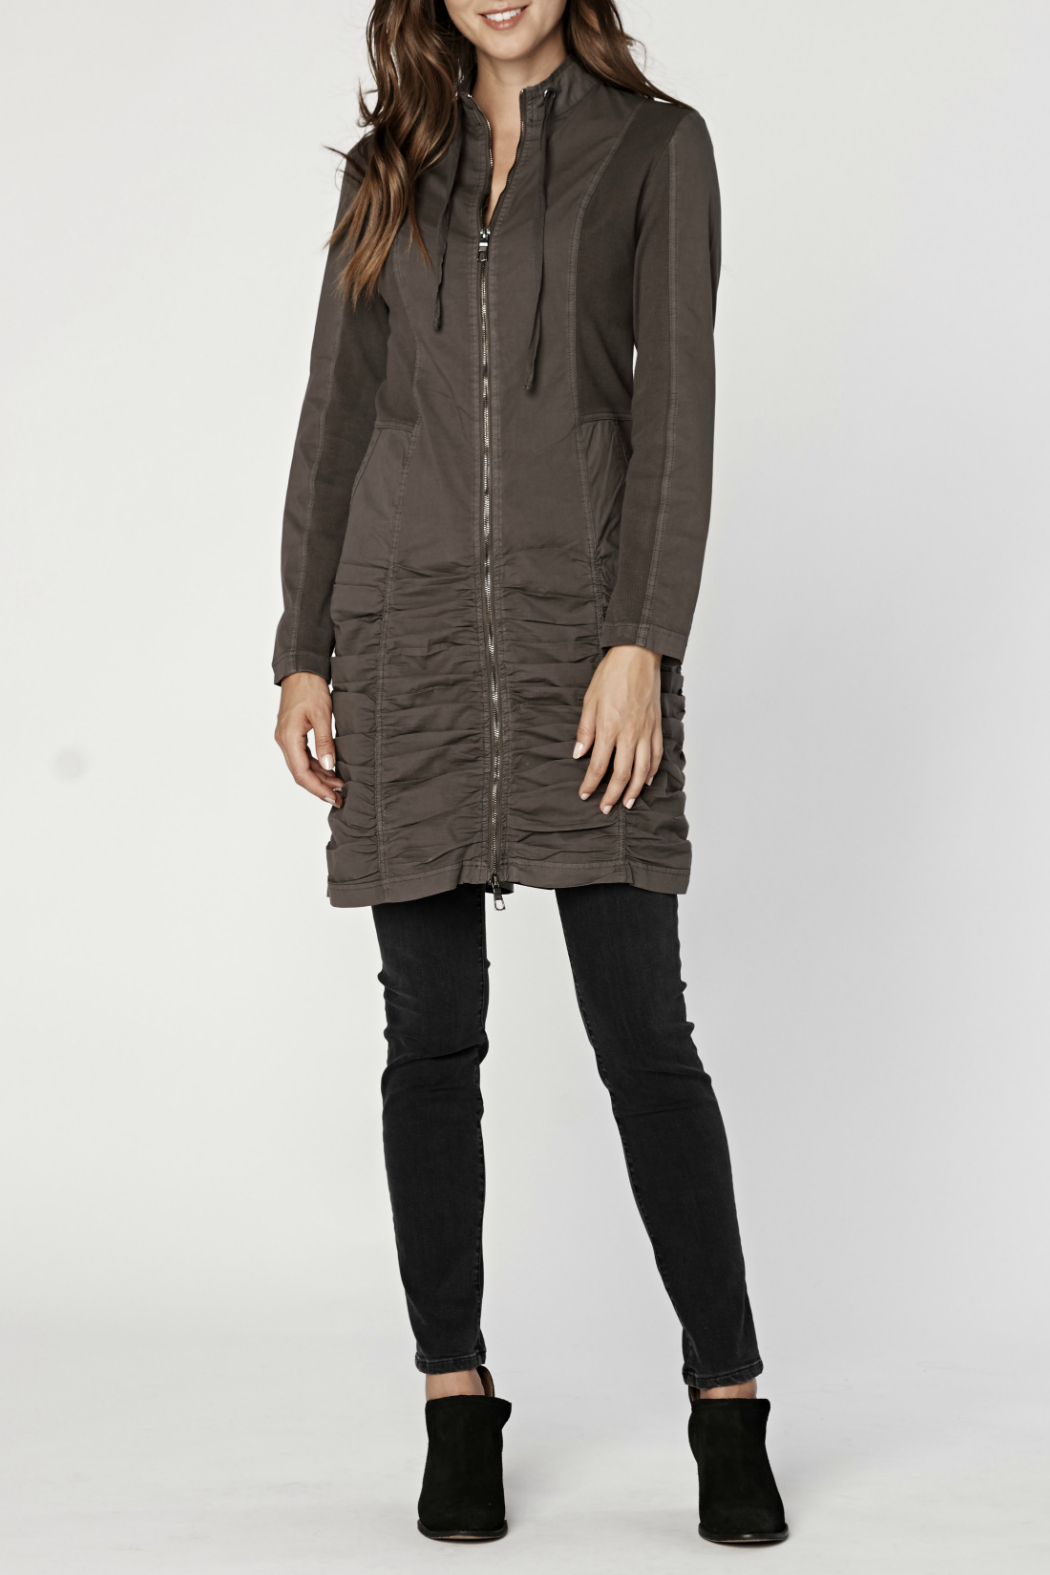 XCVI Fiore Long Jacket/Dress - Main Image